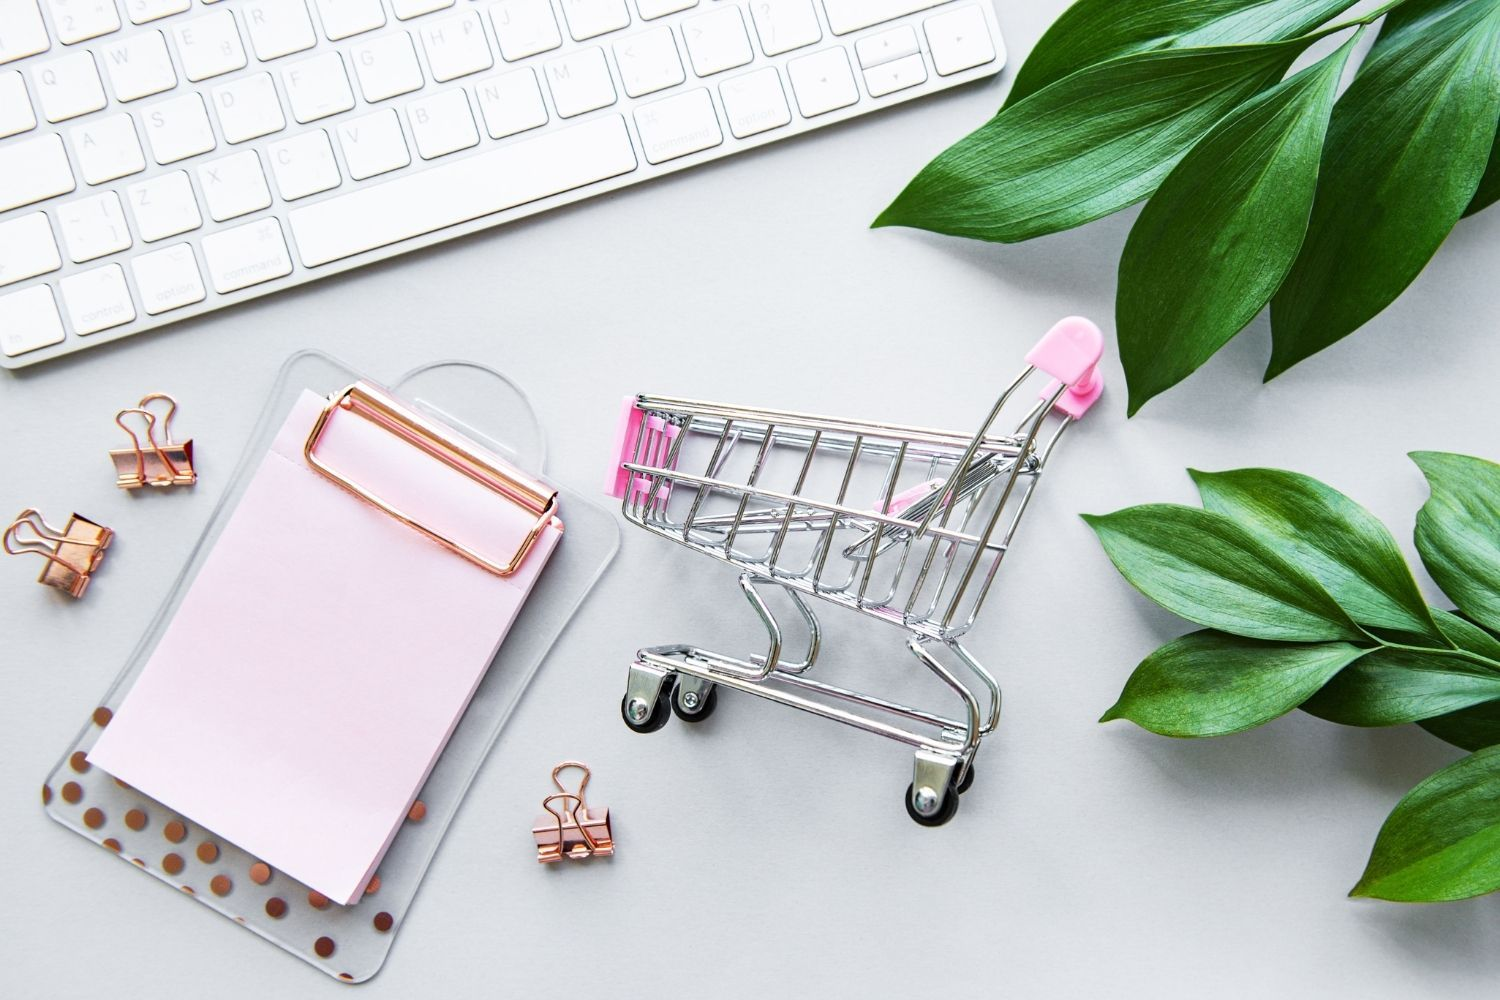 Amazon FBA: Top Items That You Should Be Selling